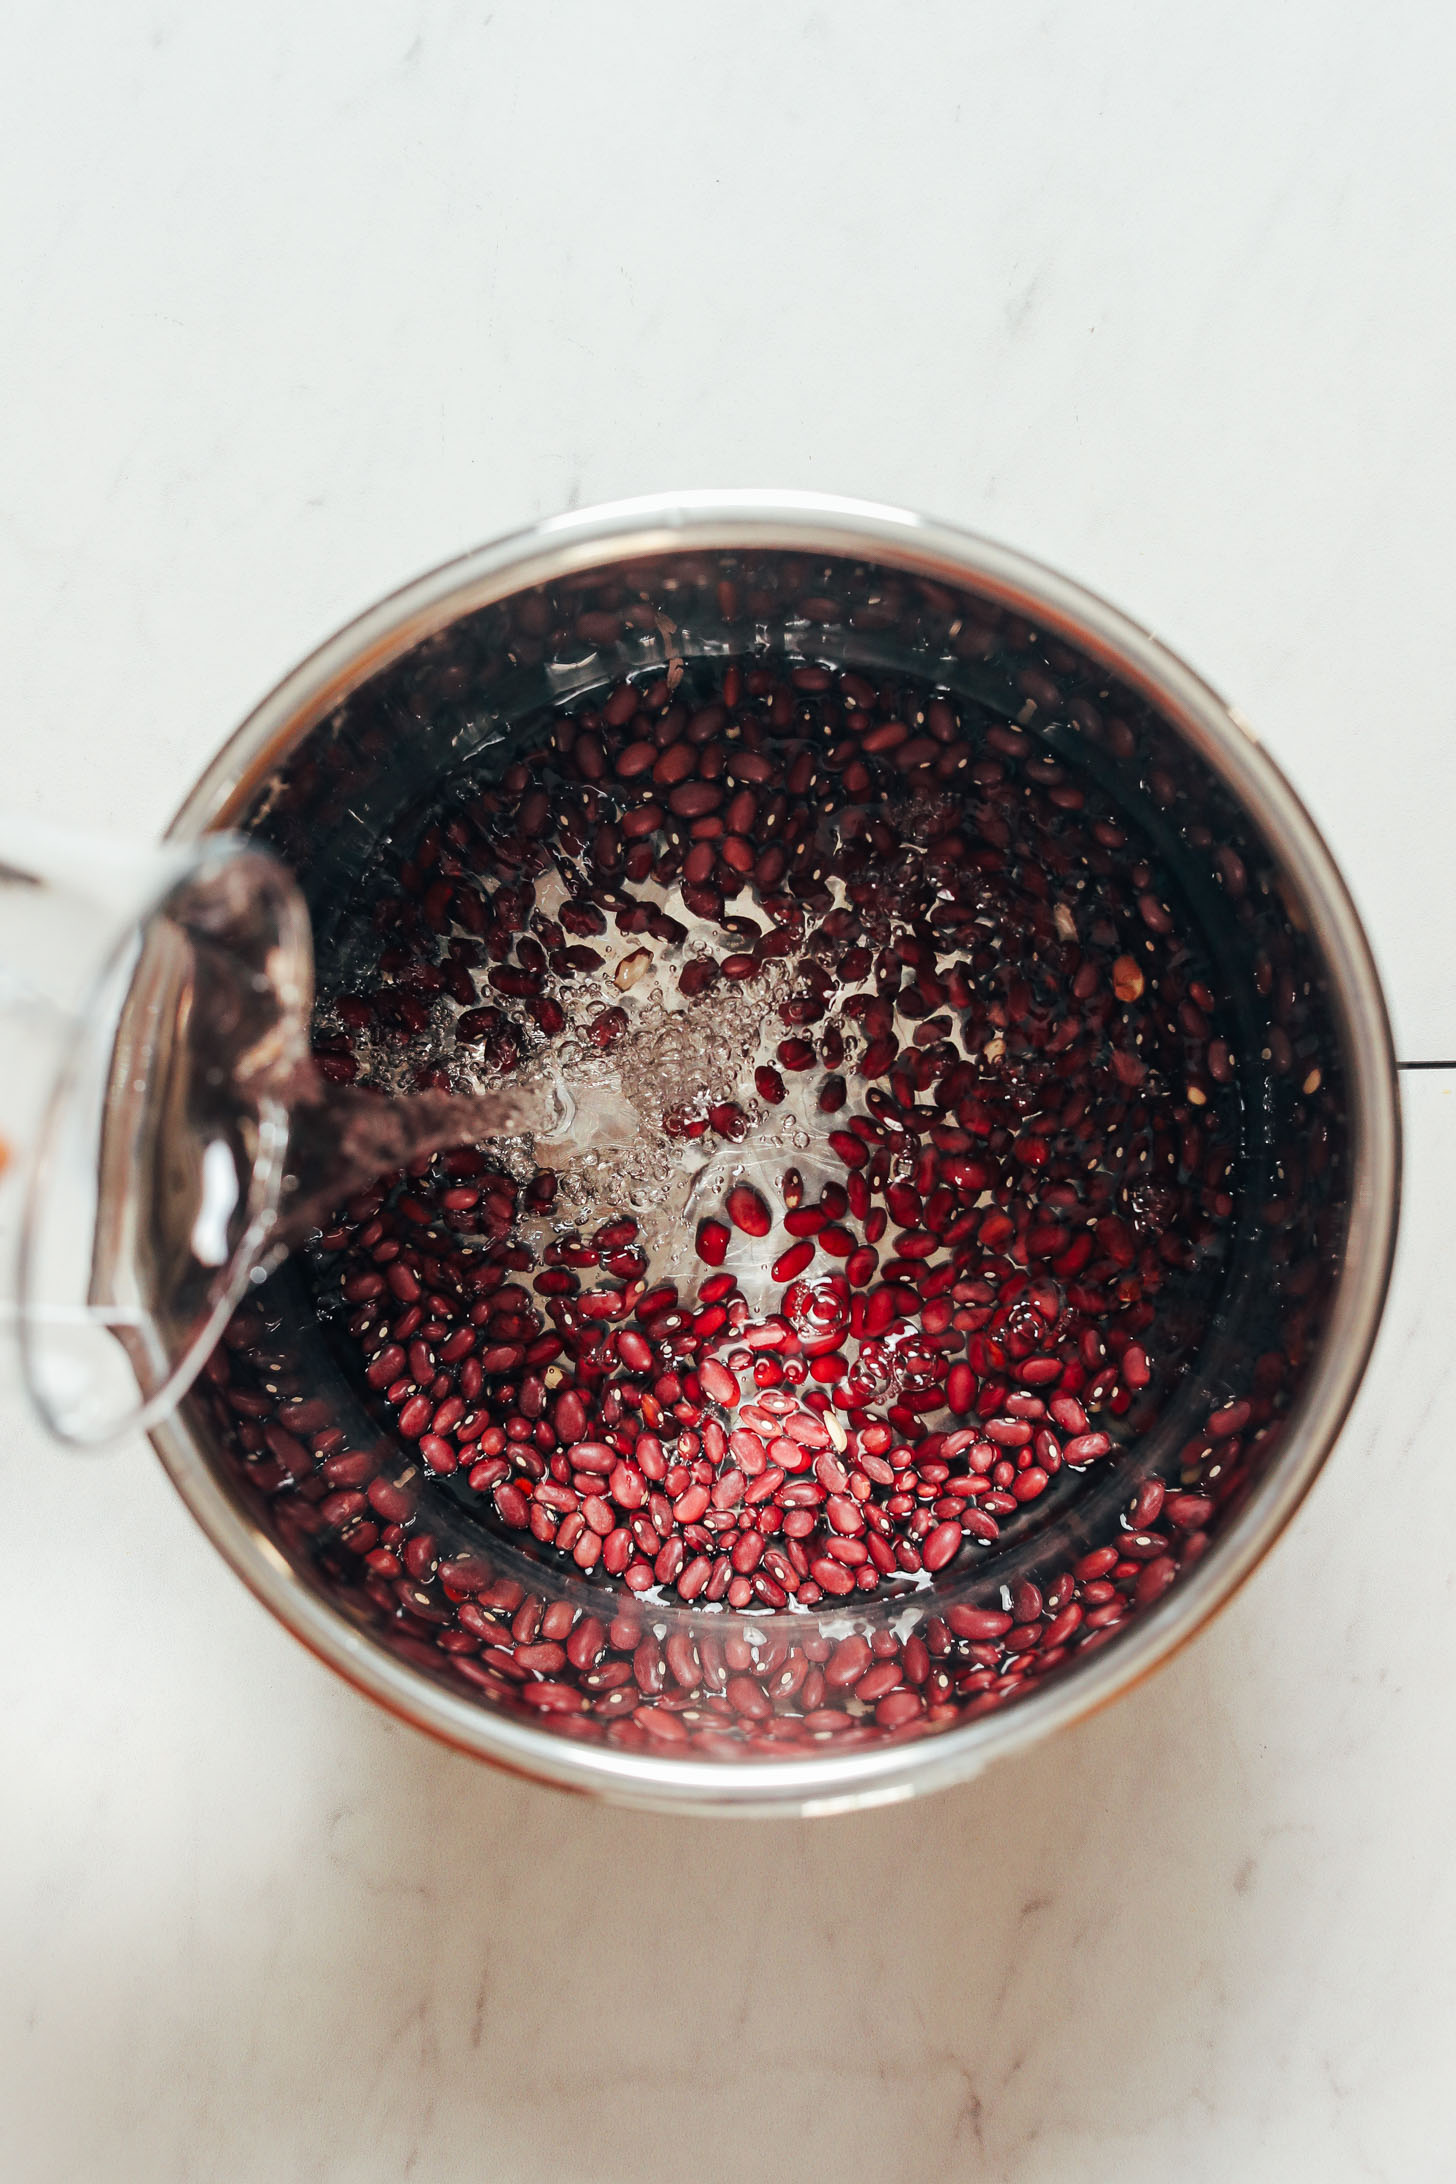 Pouring water into an Instant Pot of dry red beans